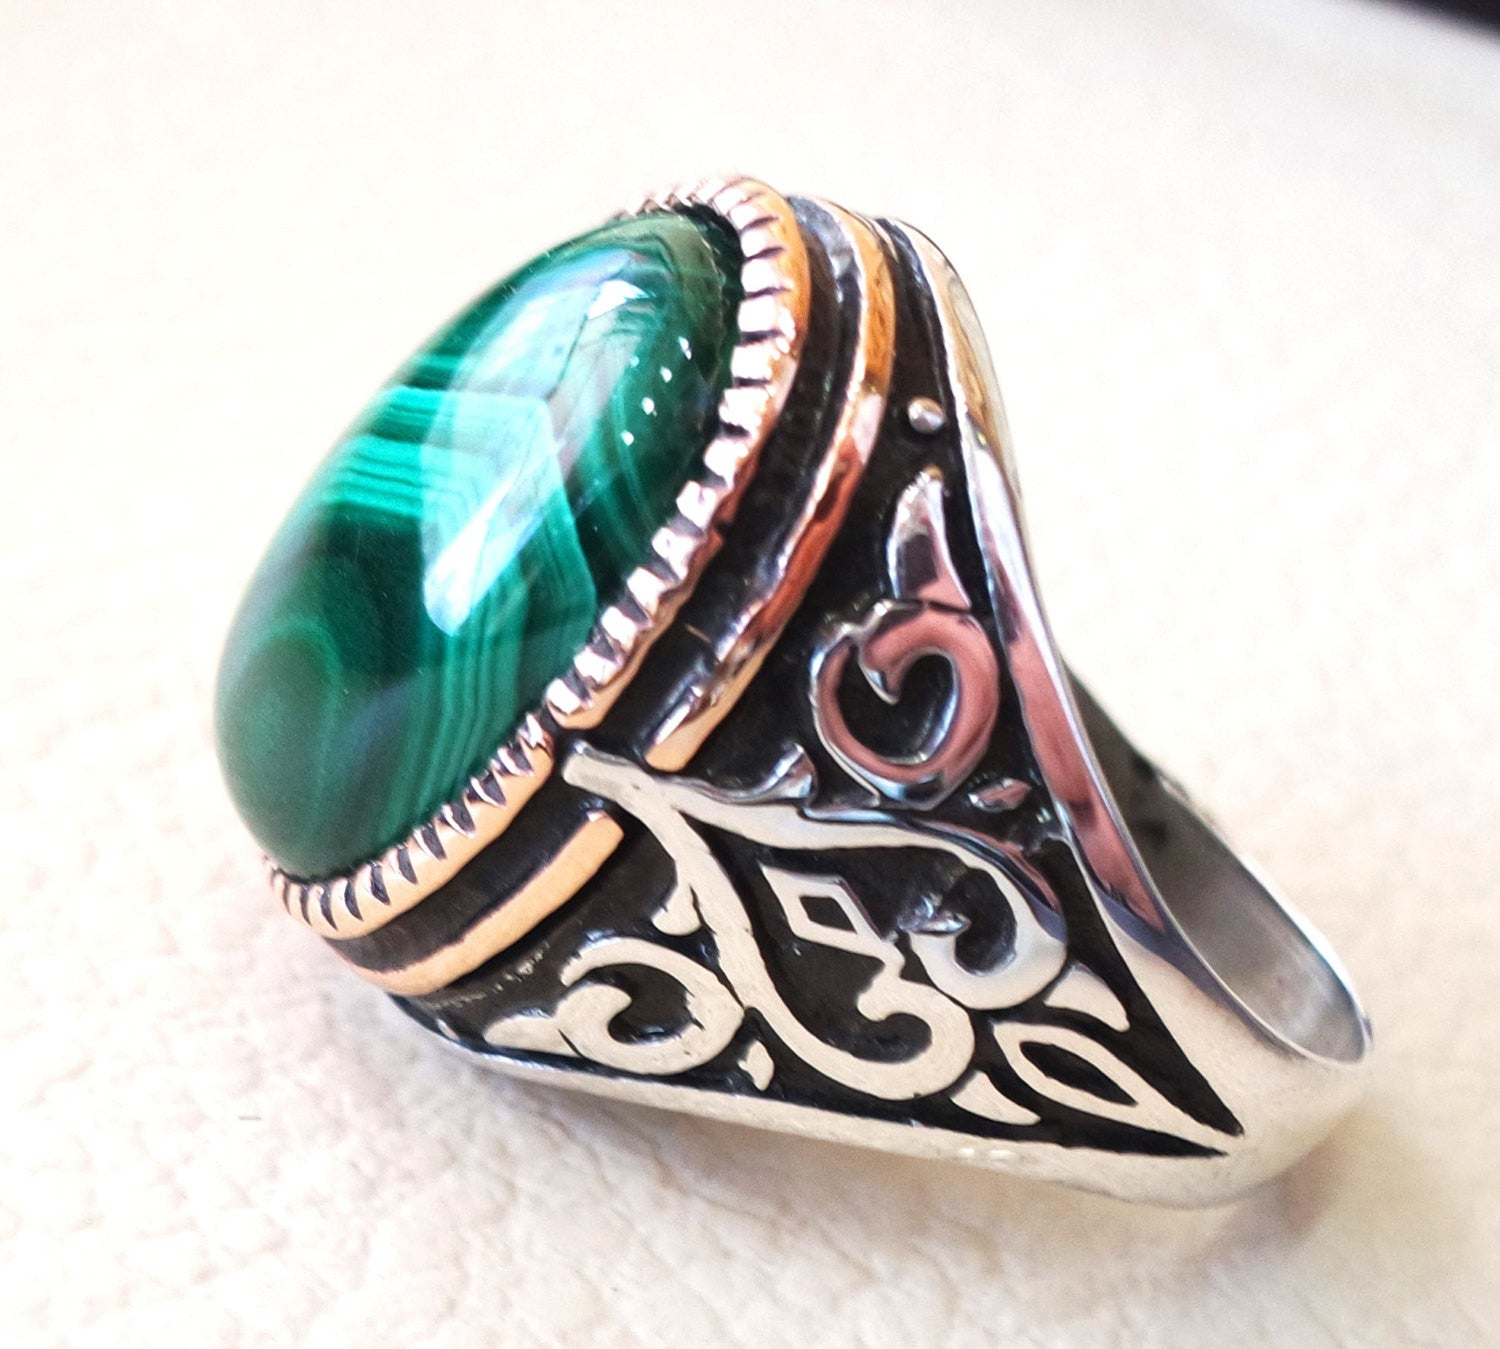 natural malachite ring high quality green cabochon semi precious stone sterling silver 925 and bronze ottoman arab style heavy men jewelry